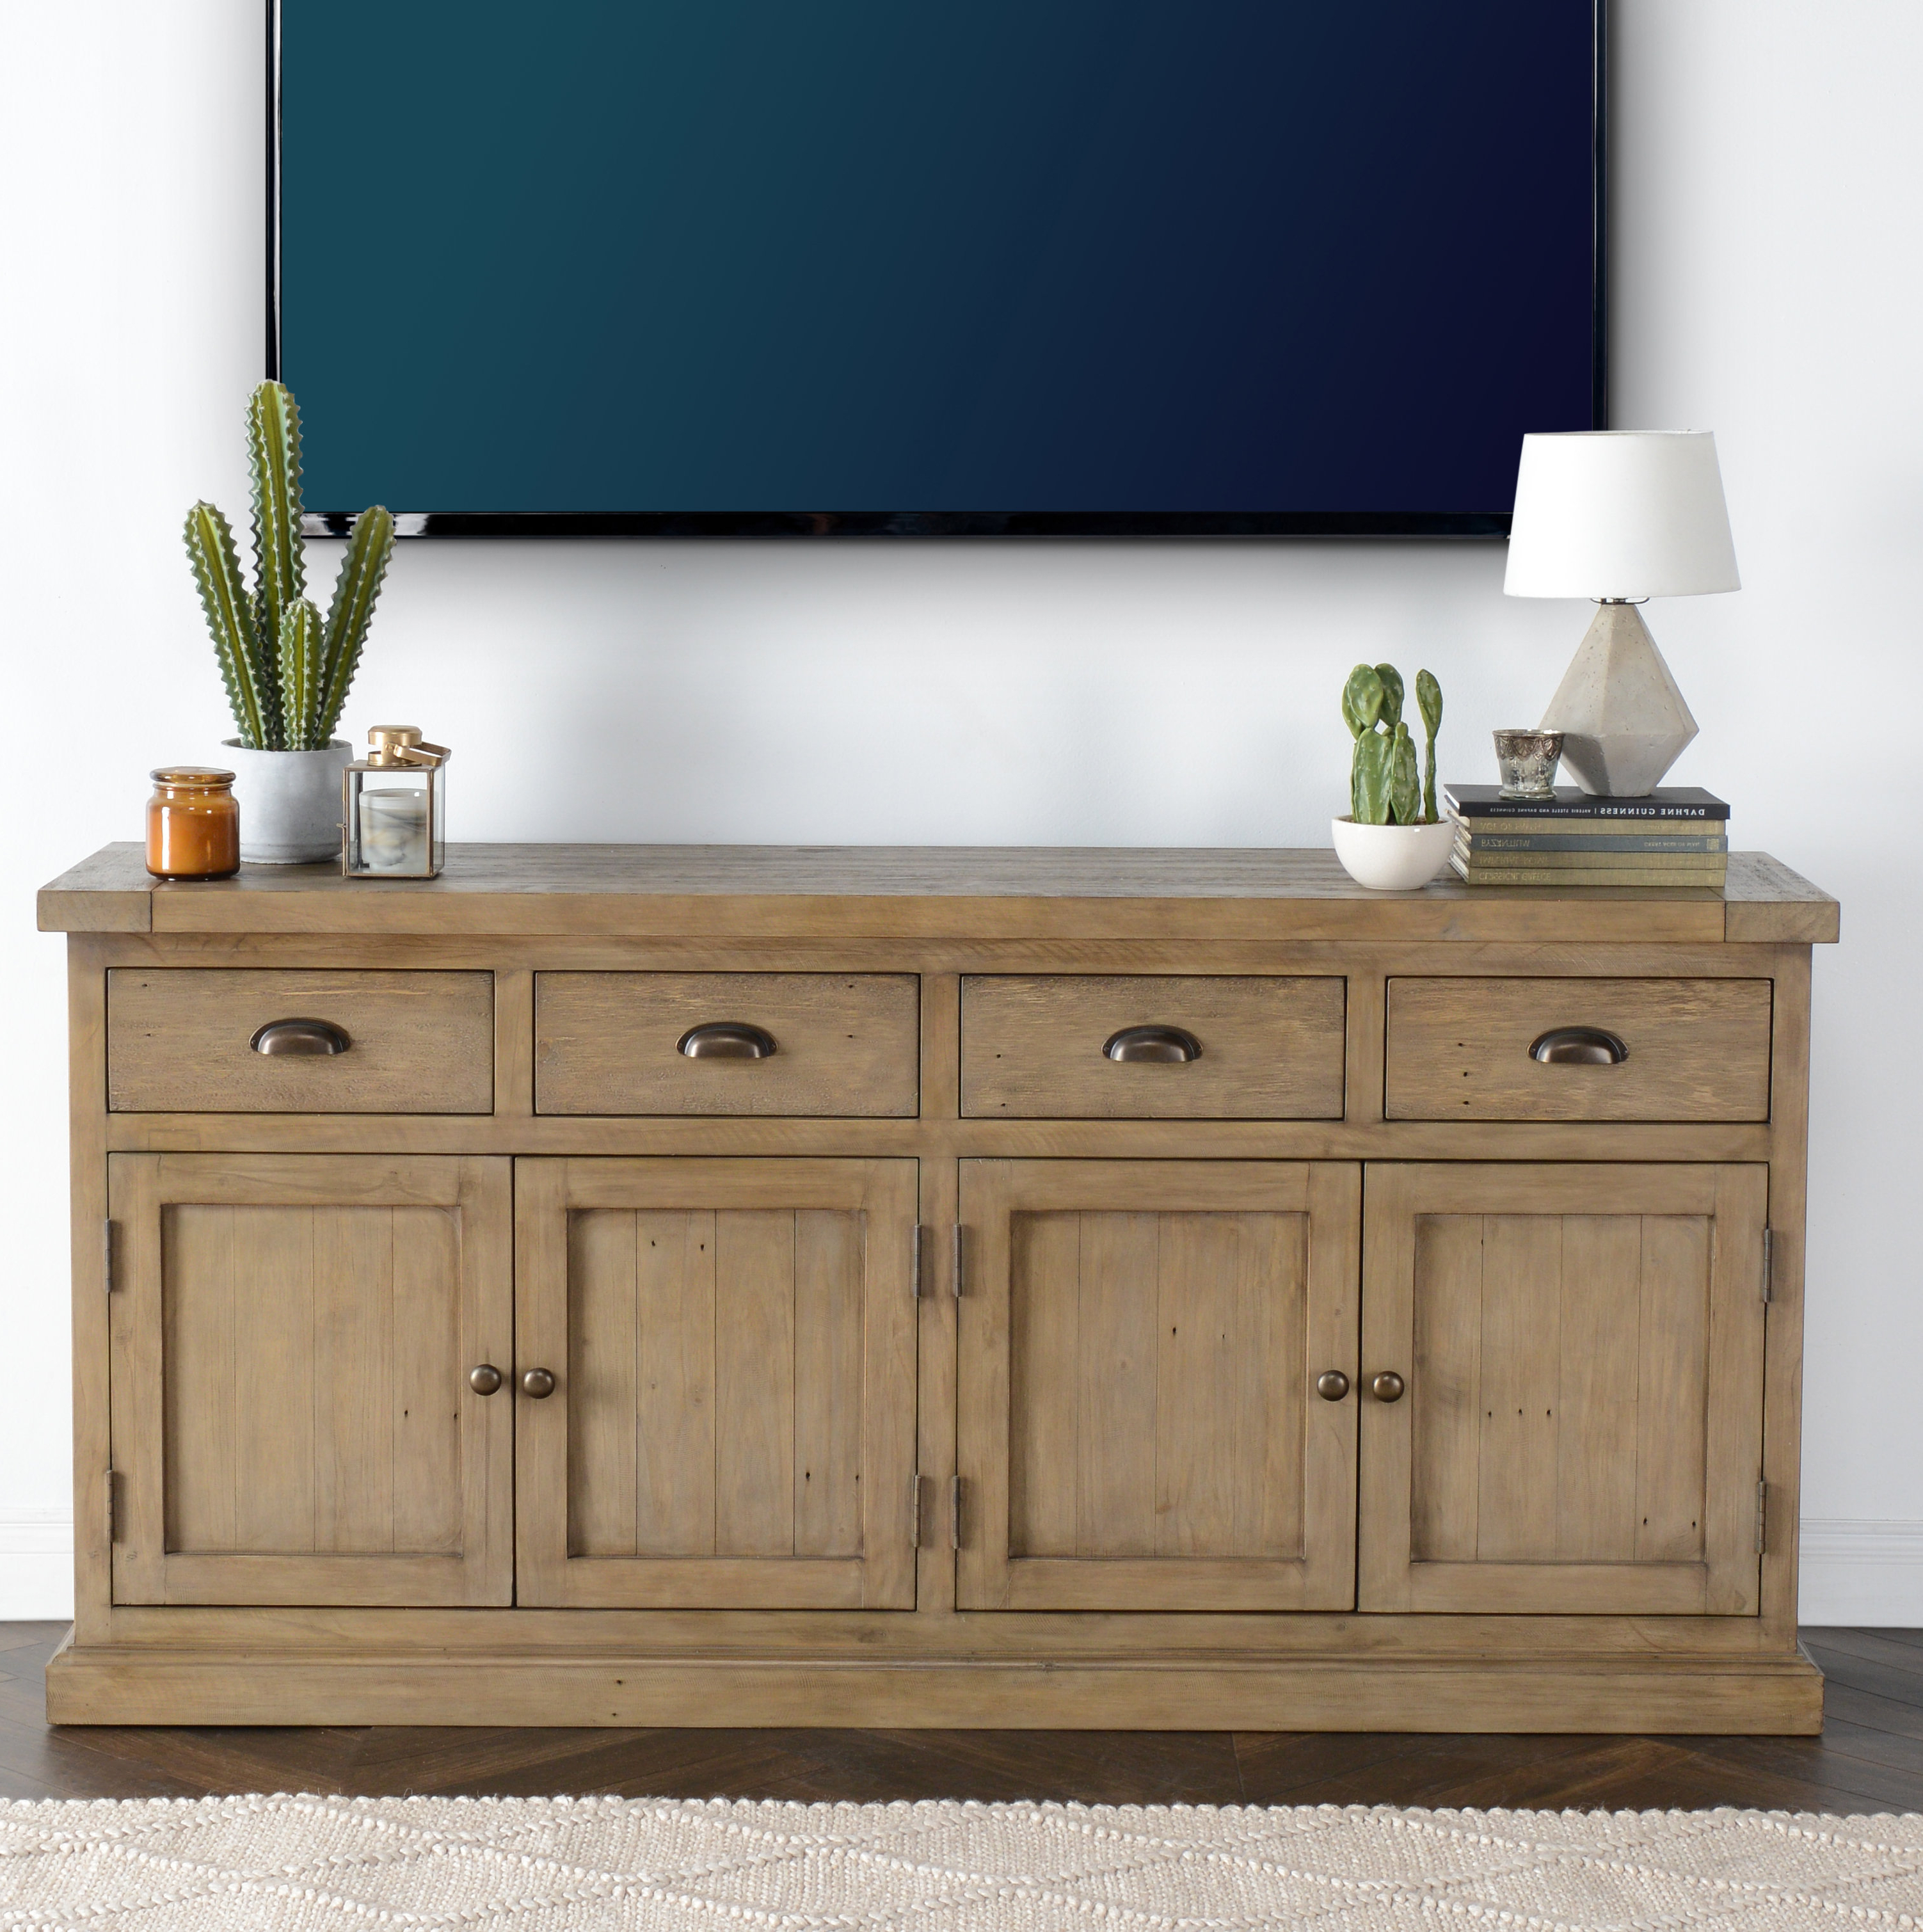 Lainey Credenzas With Best And Newest Gertrude Sideboard (Gallery 17 of 20)